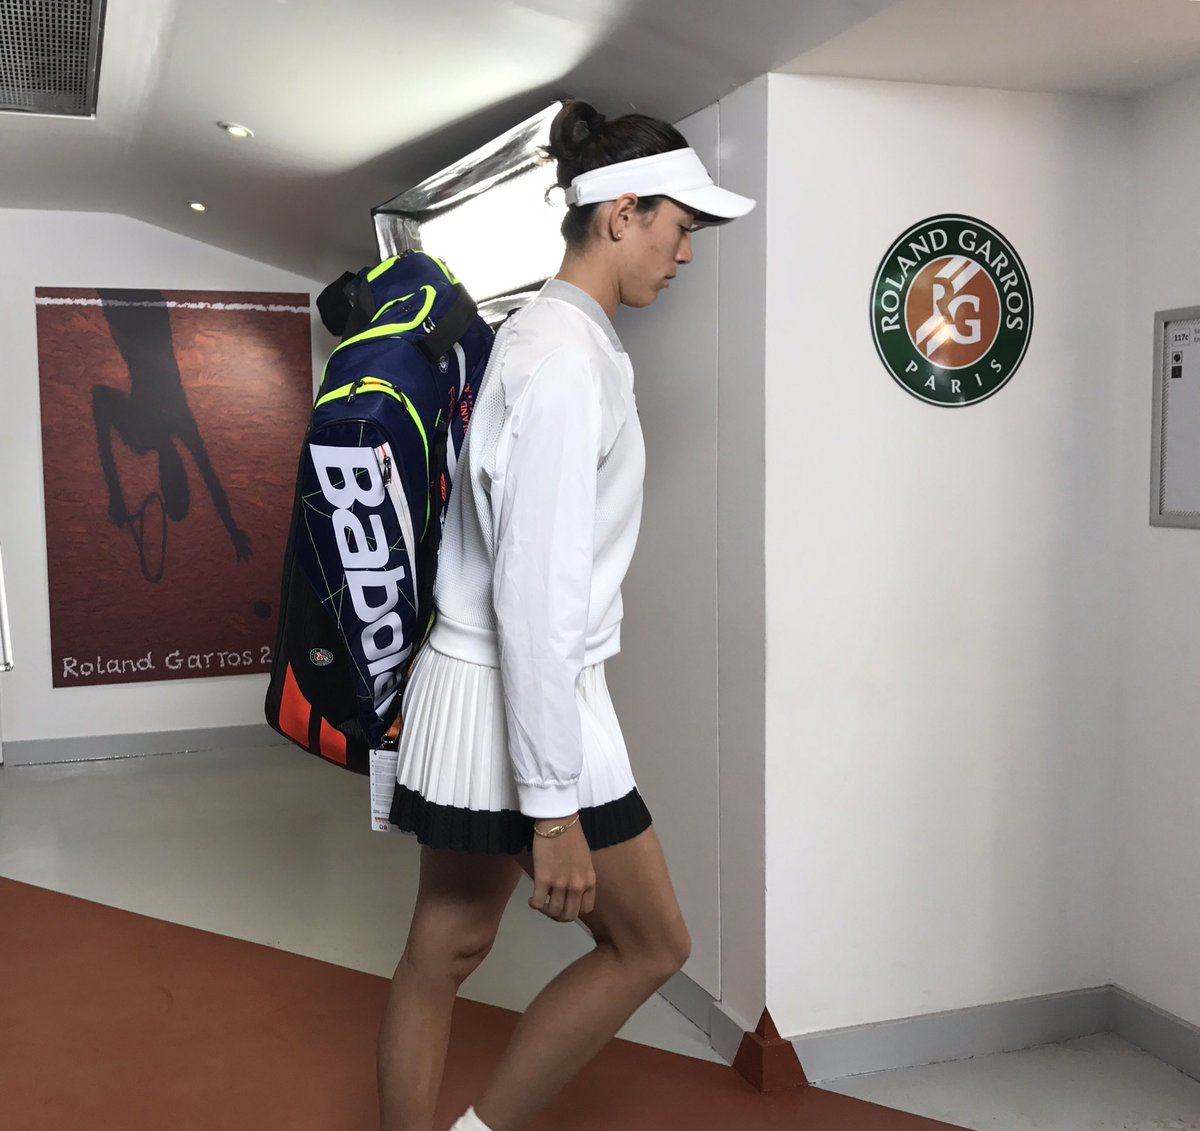 First up today on PC - @GarbiMuguruza takes on @Schiavone_Fra! #RG17 h...